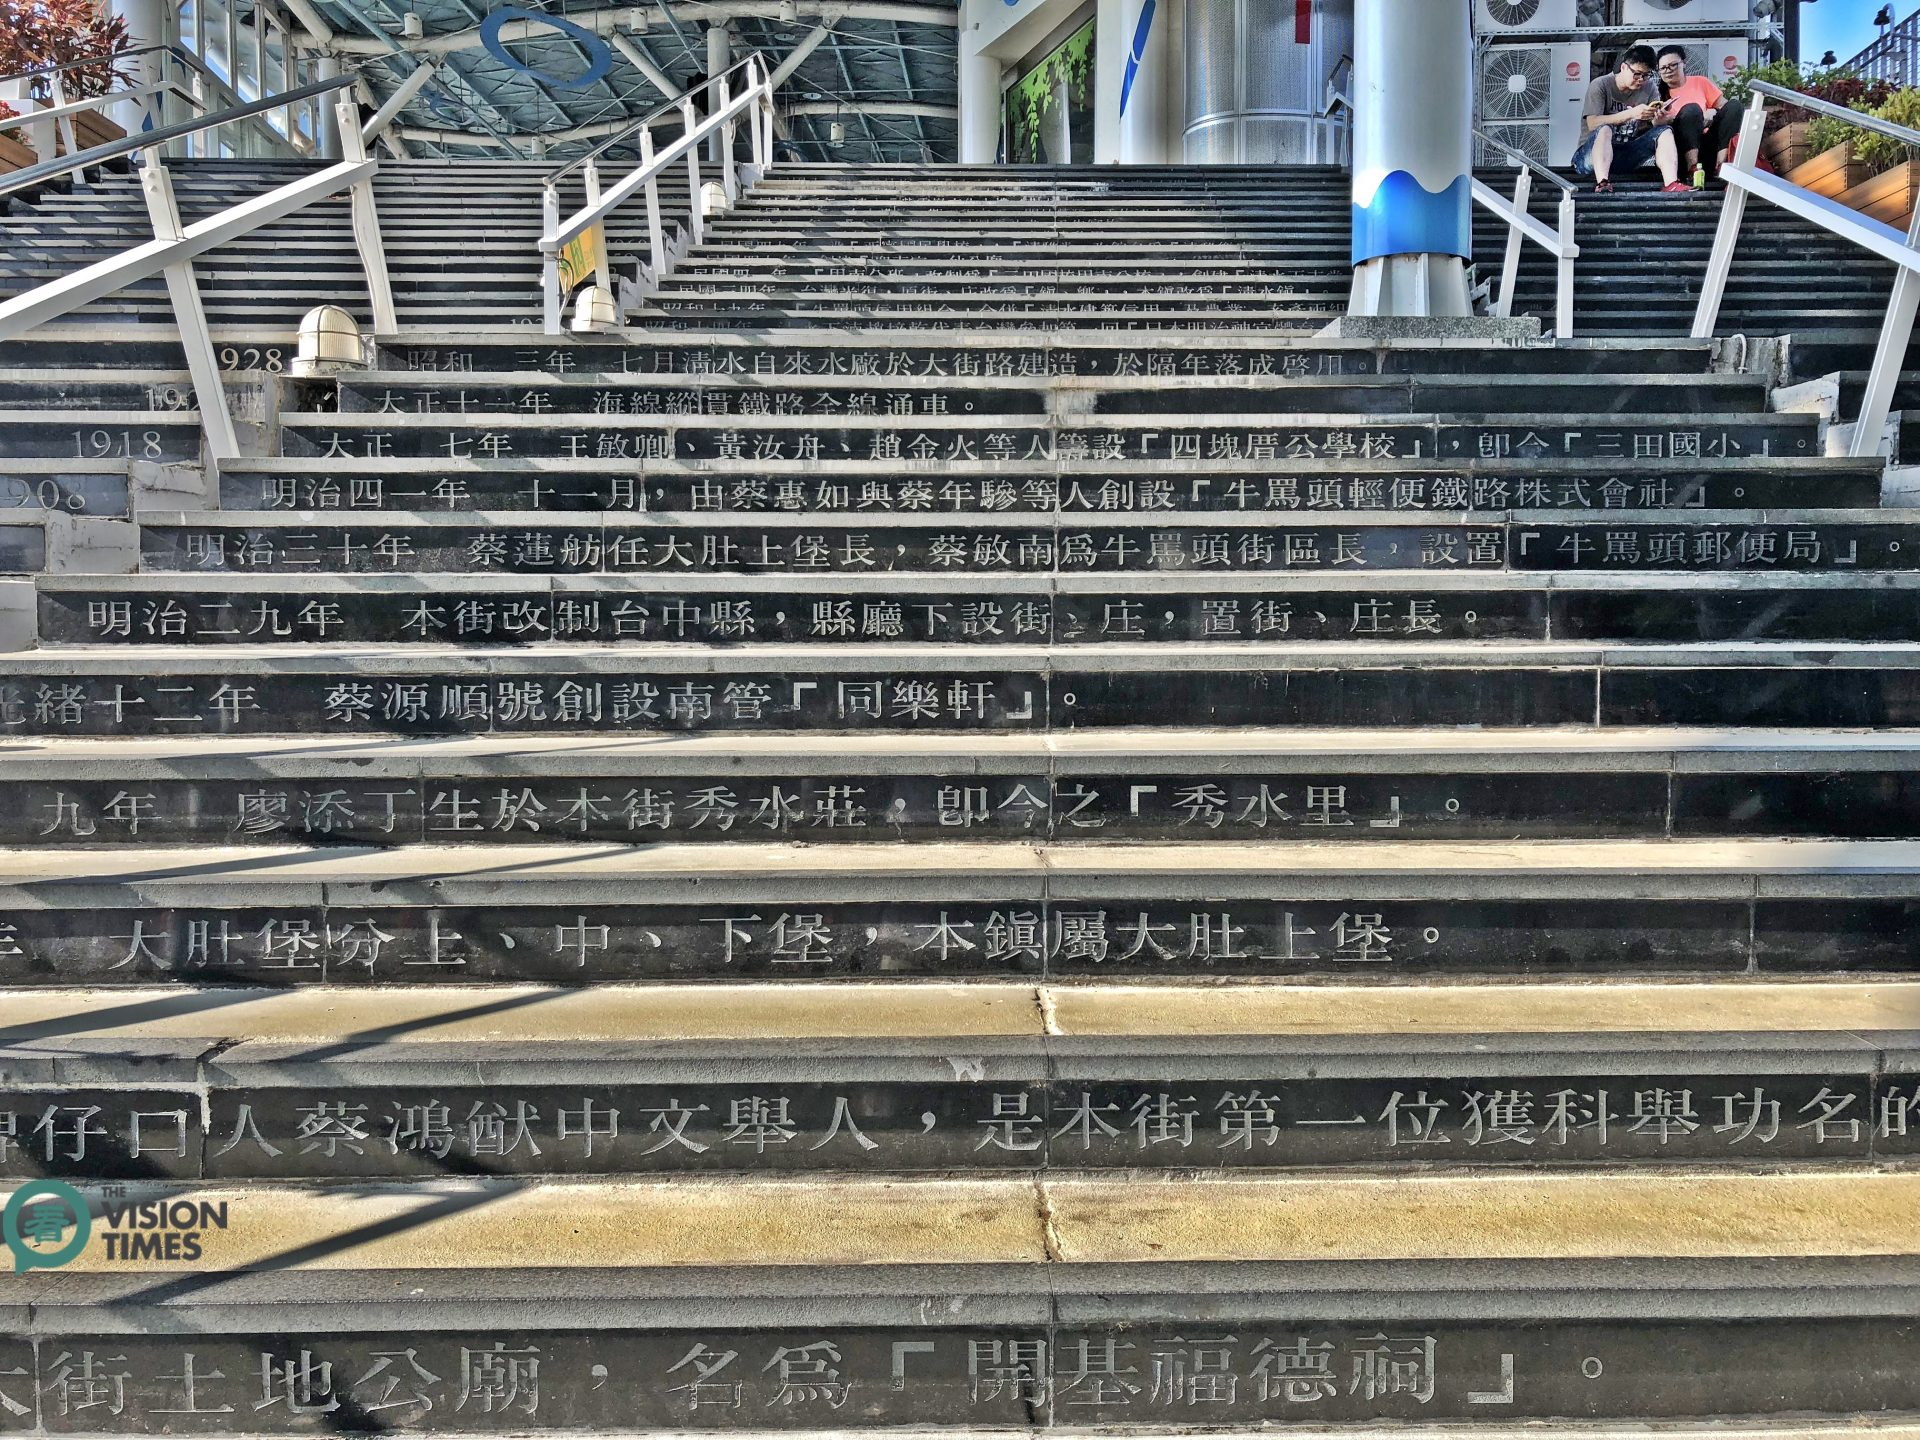 """""""The Stairs of History"""" in Qingshui Service Area, on which major historical events of Qingshui are inscribed. (Image: Billy Shyu / Vision Times)"""